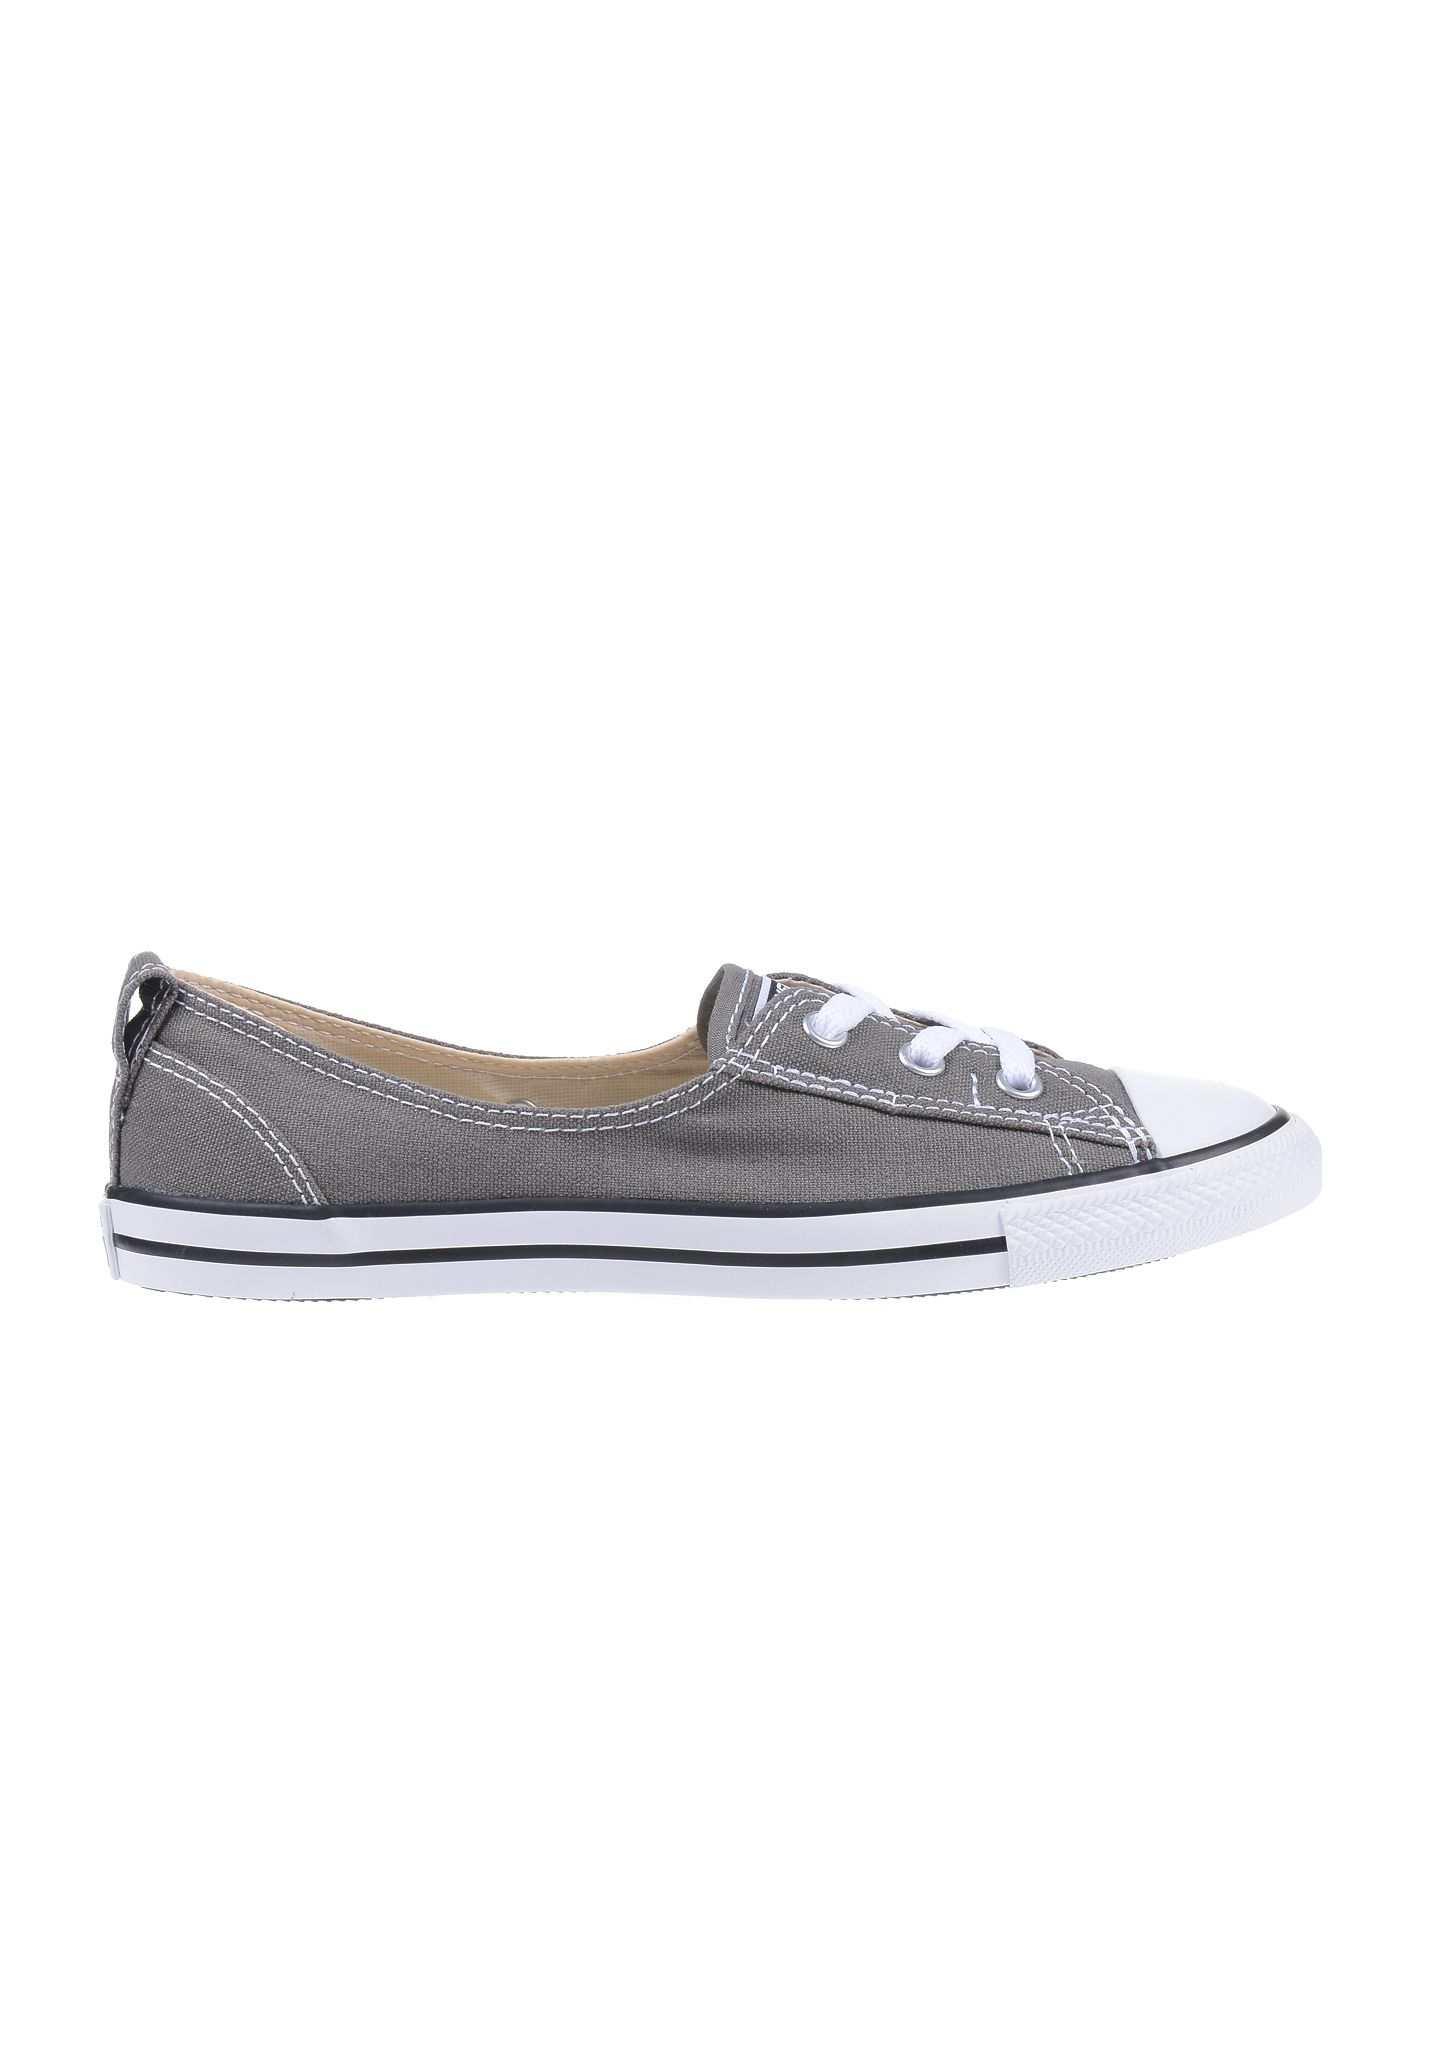 Converse Chuck Taylor All Star Ballet Lace Trainers Color: Grey